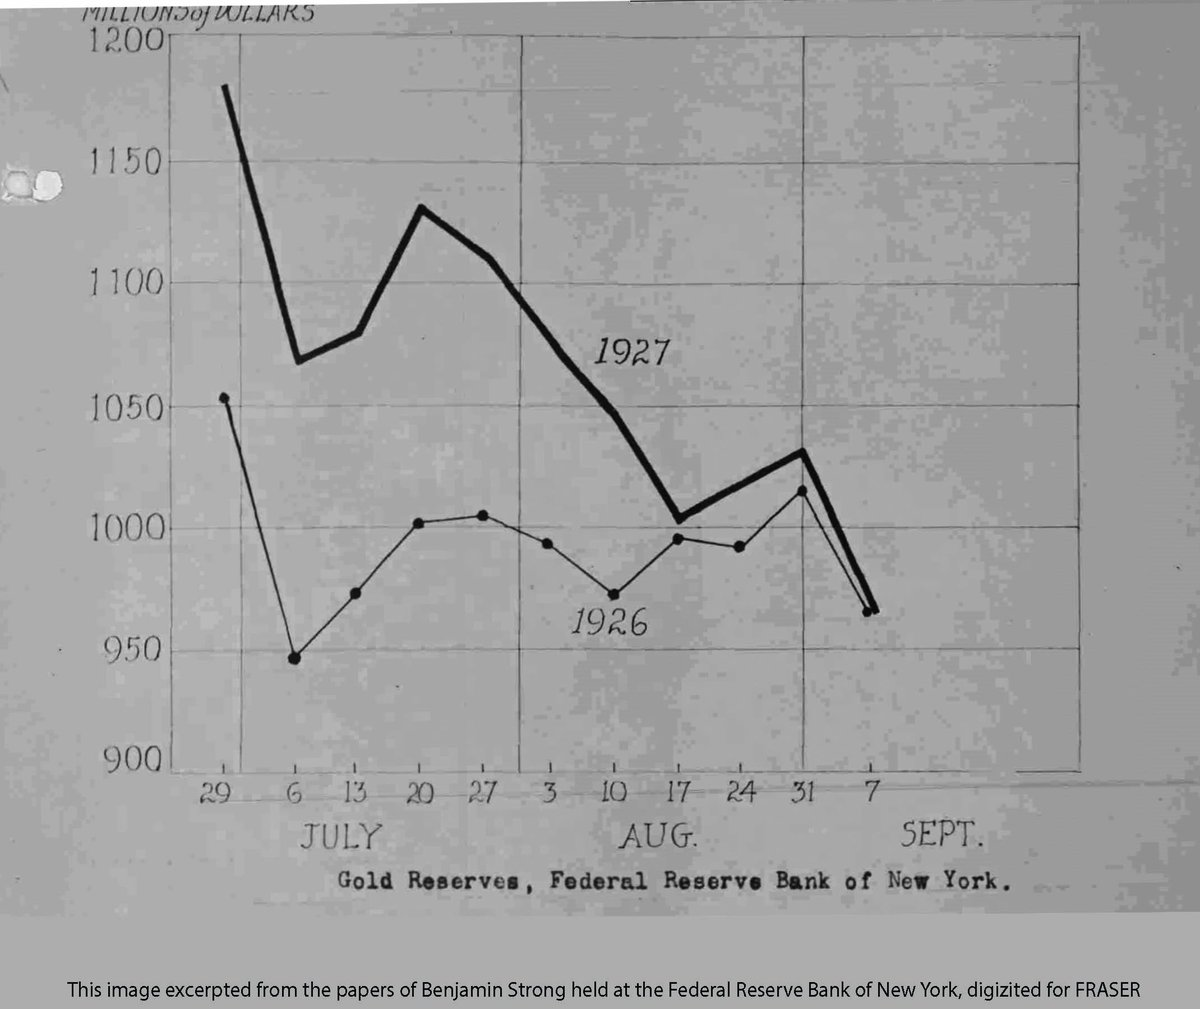 From the #archives: Gold reserves held by the New York Fed, Q3 1926 and 1927 ow.ly/LmPY30lDXom